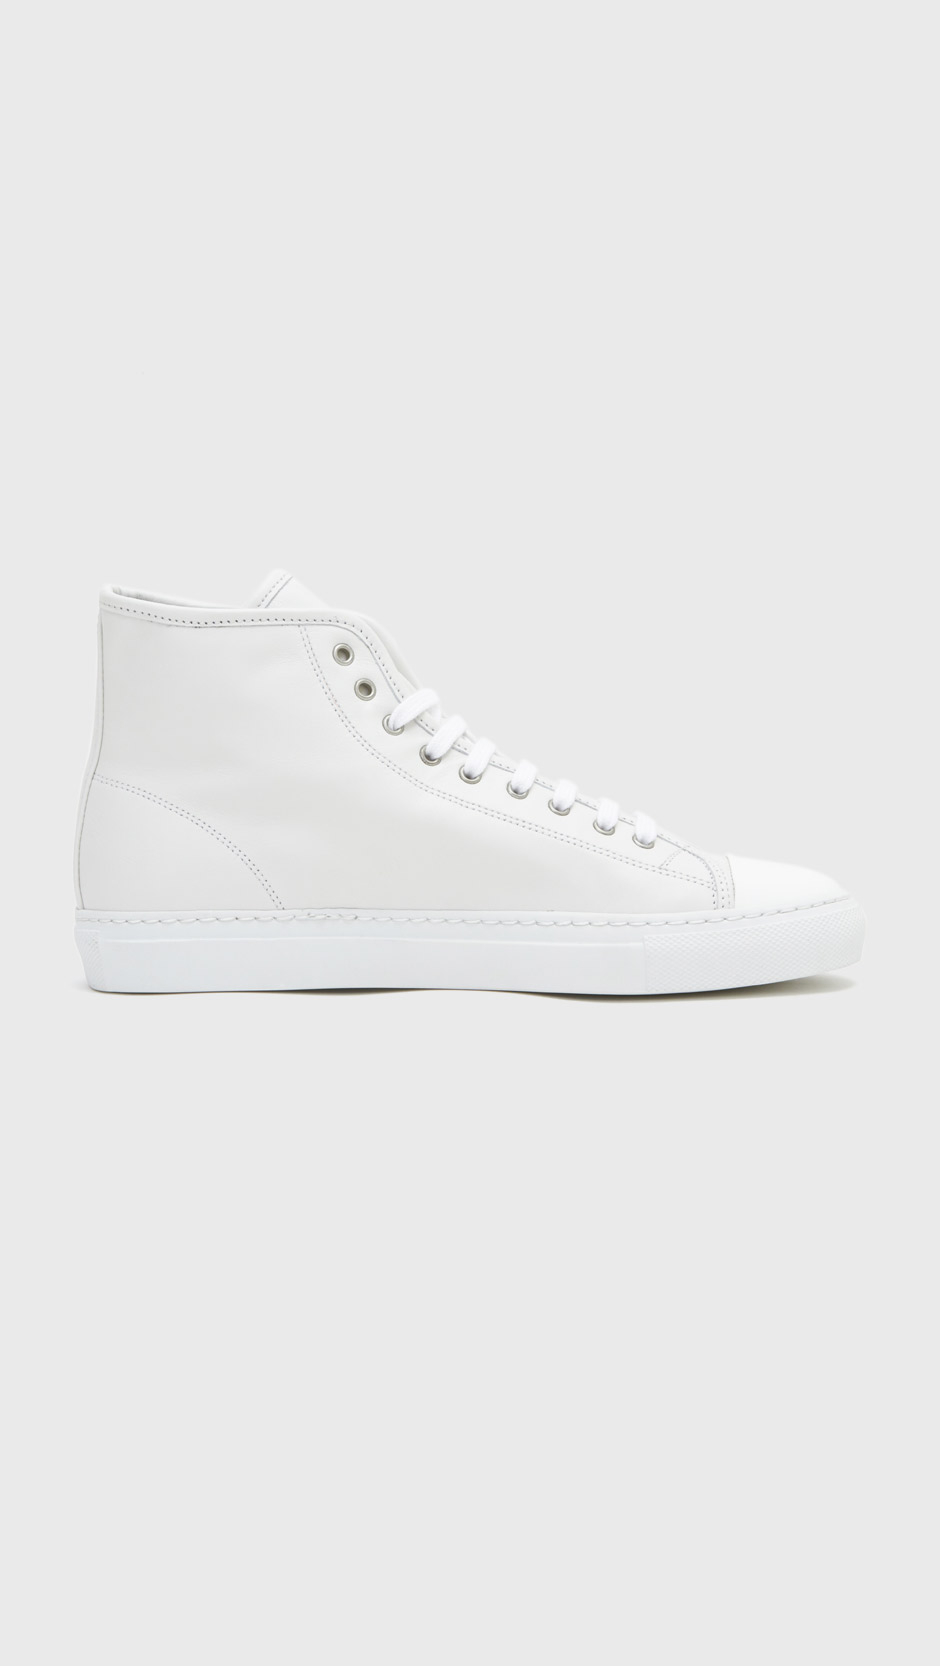 White Tournament High Cap Toe Sneakers Common Projects KxxsOG6